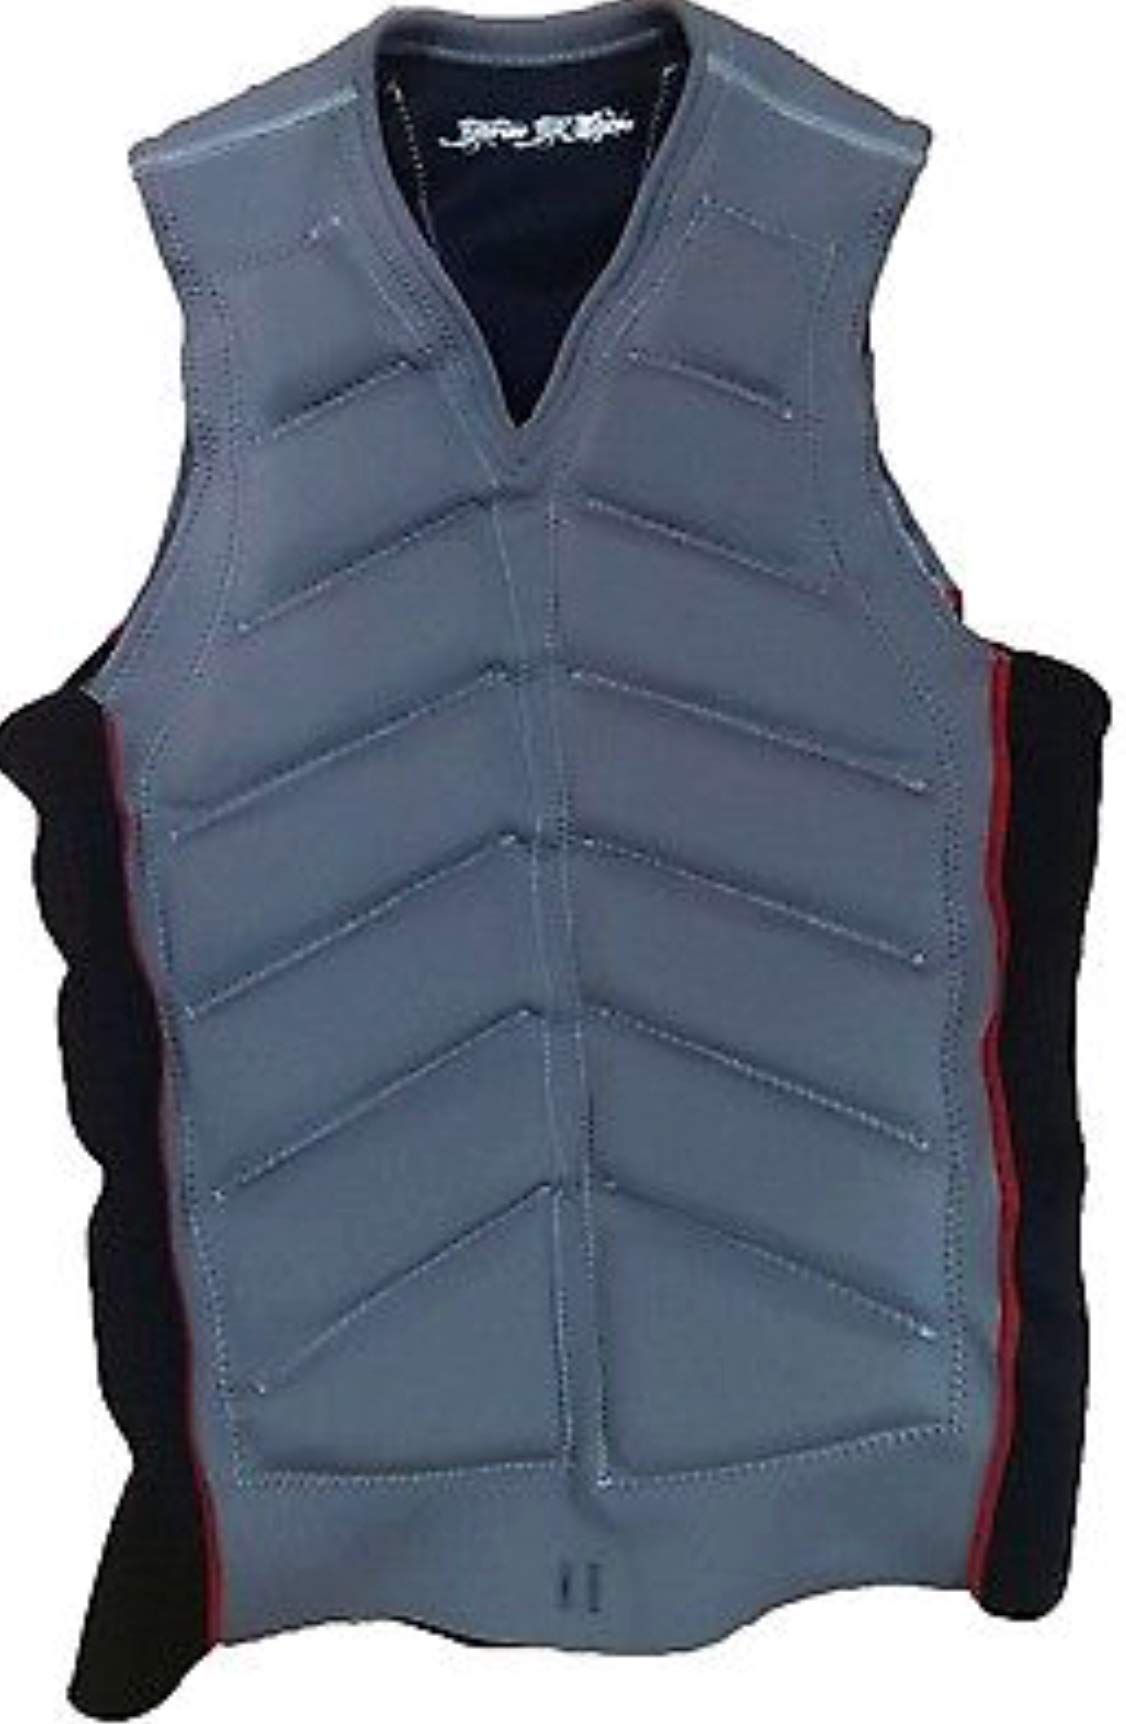 Tantrum Tow Ropes Wakeboard Wakesurf Vest Extra Large XL by Tantrum Tow Ropes